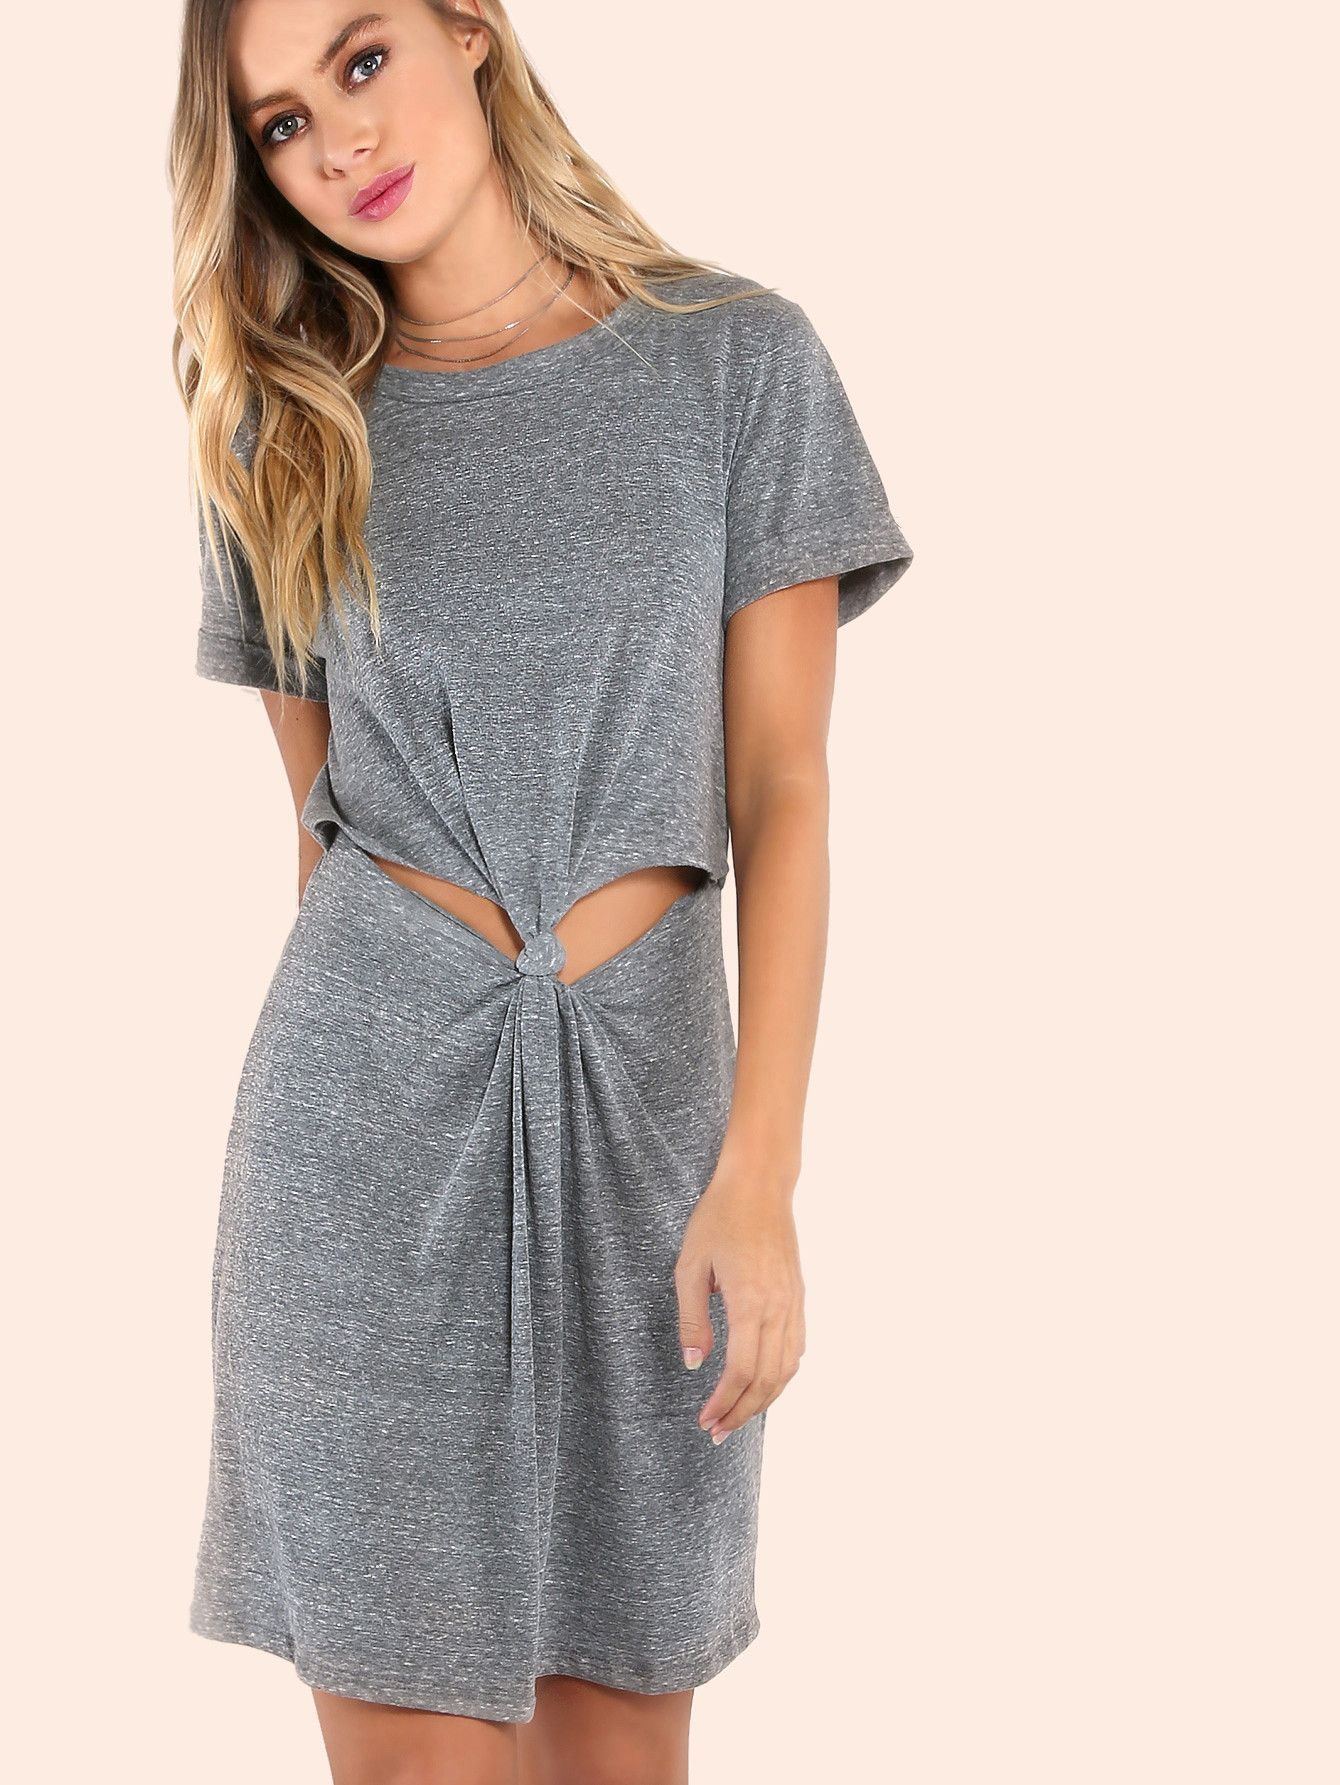 Cuffed sleeve knotted peakaboo dress grey gray shorts short